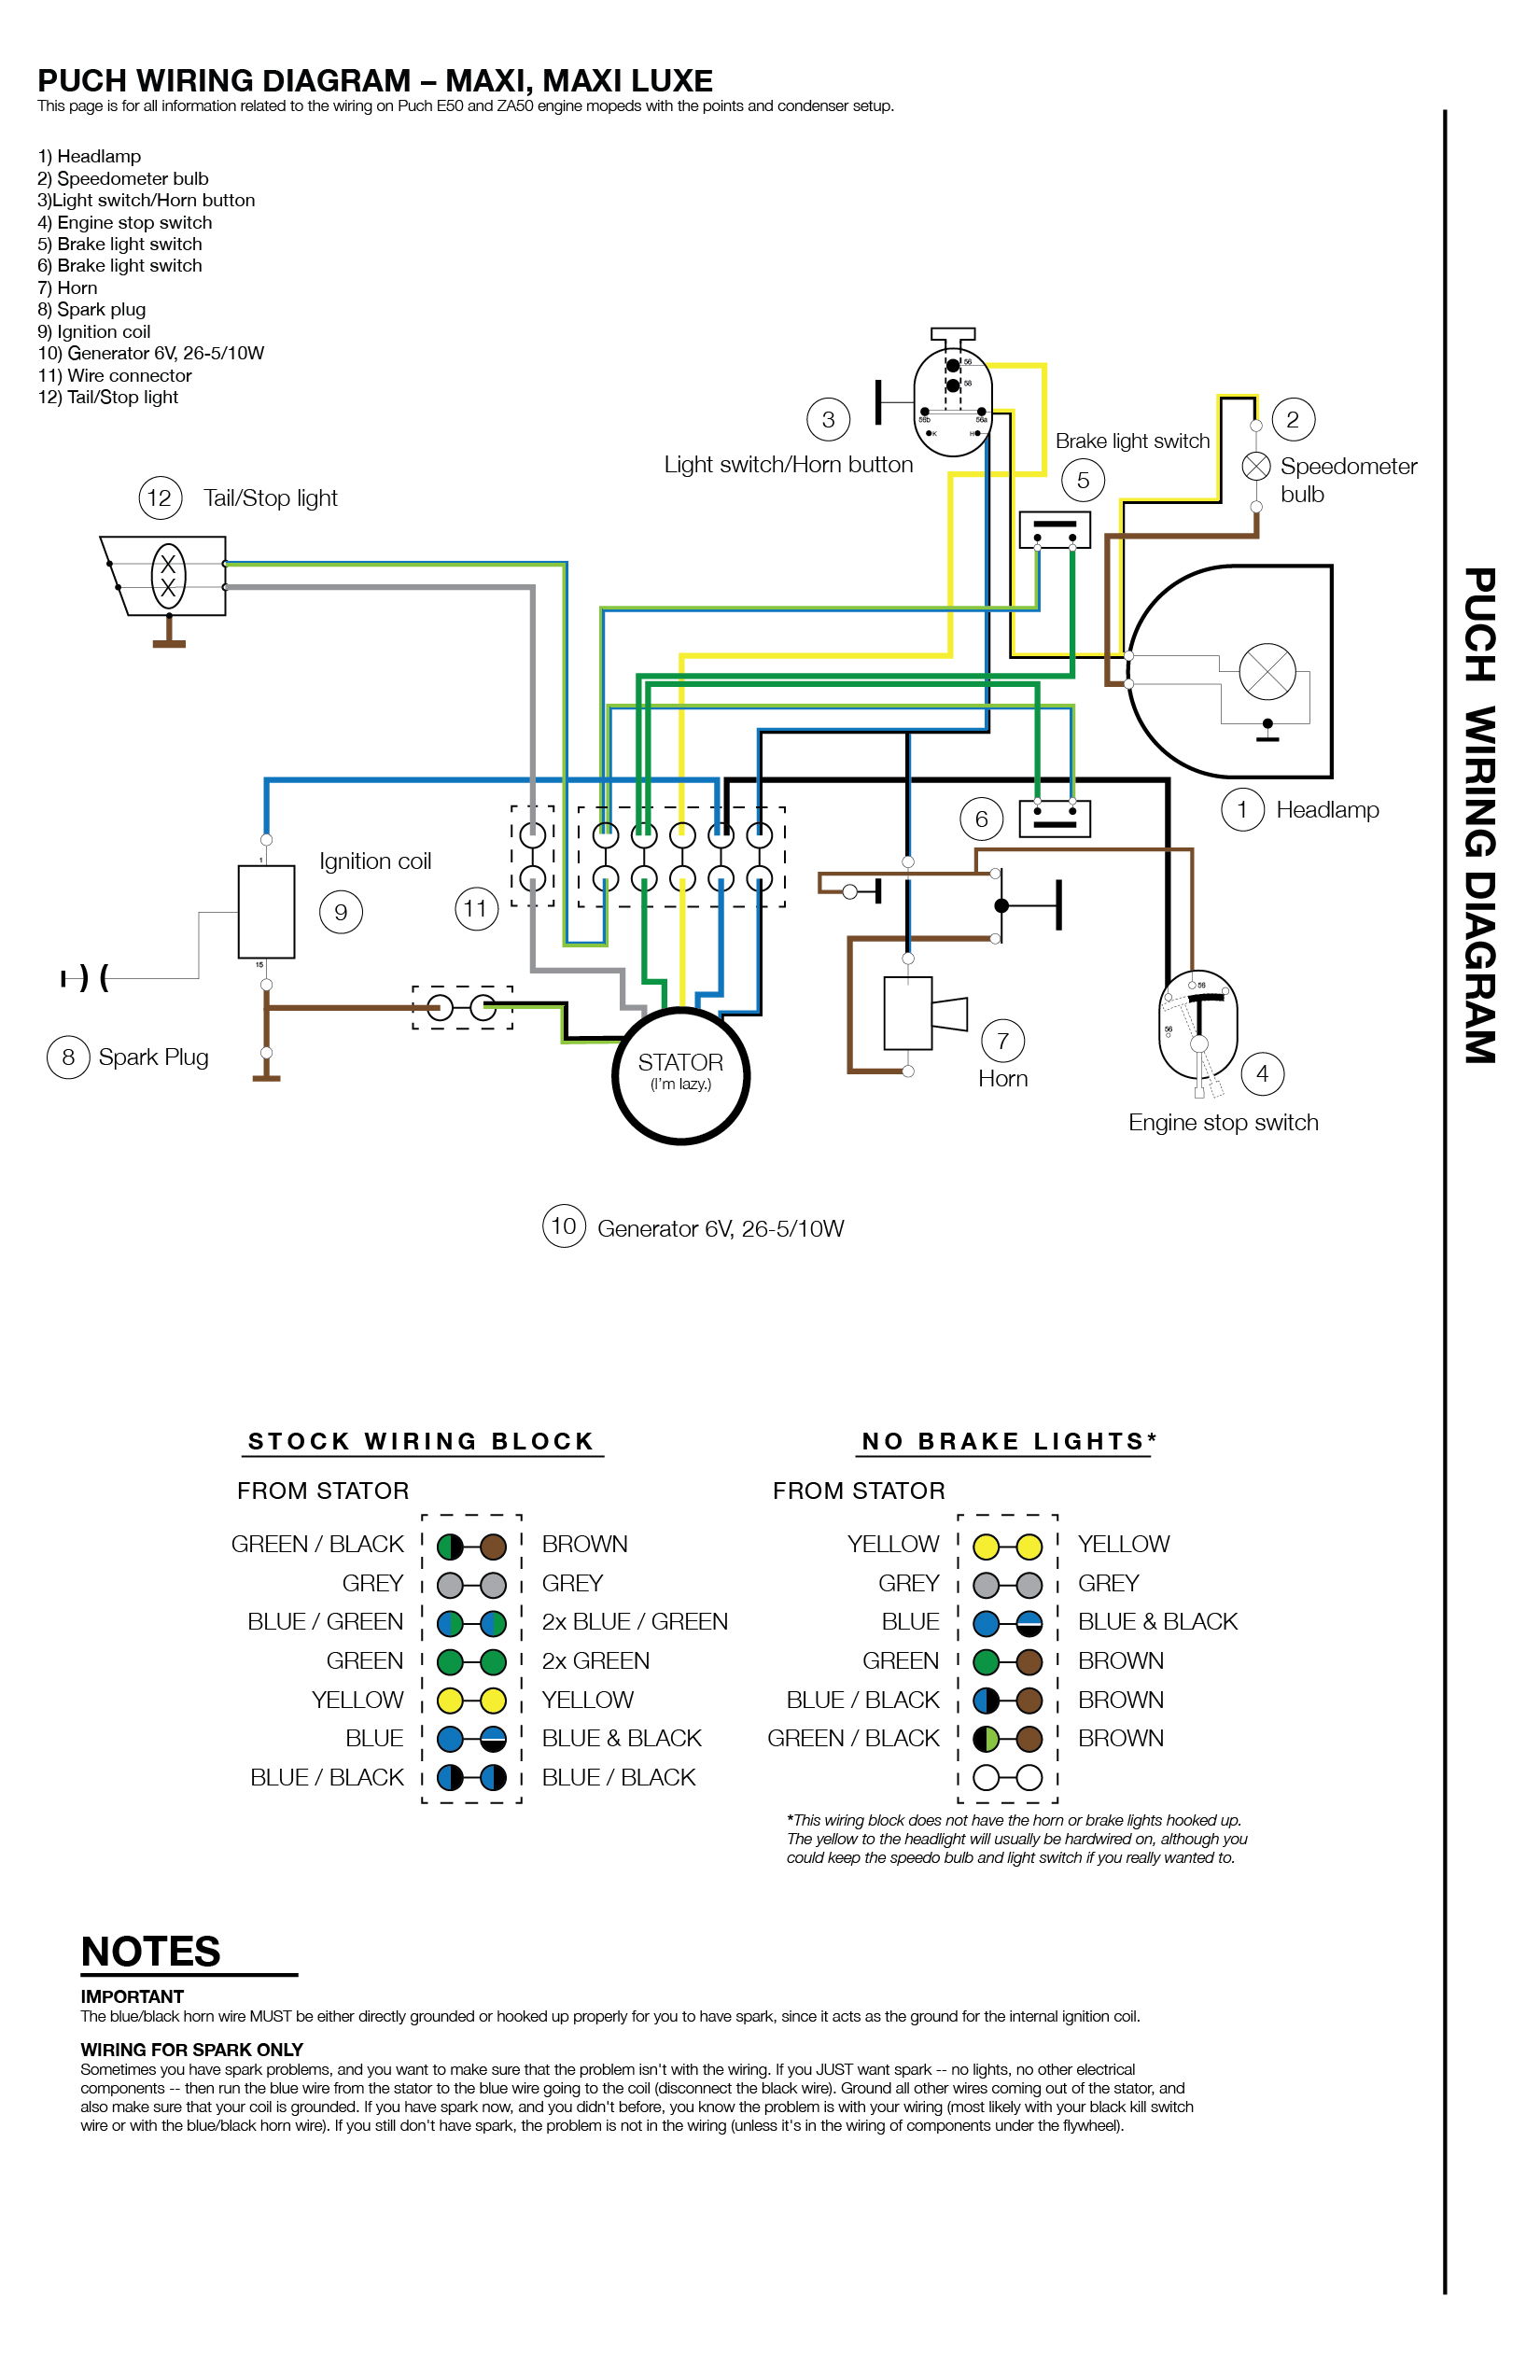 Tail Light Wiring In Series On Connected Vehicle Schematics Extreme X8 Controller Diagram Puch 02